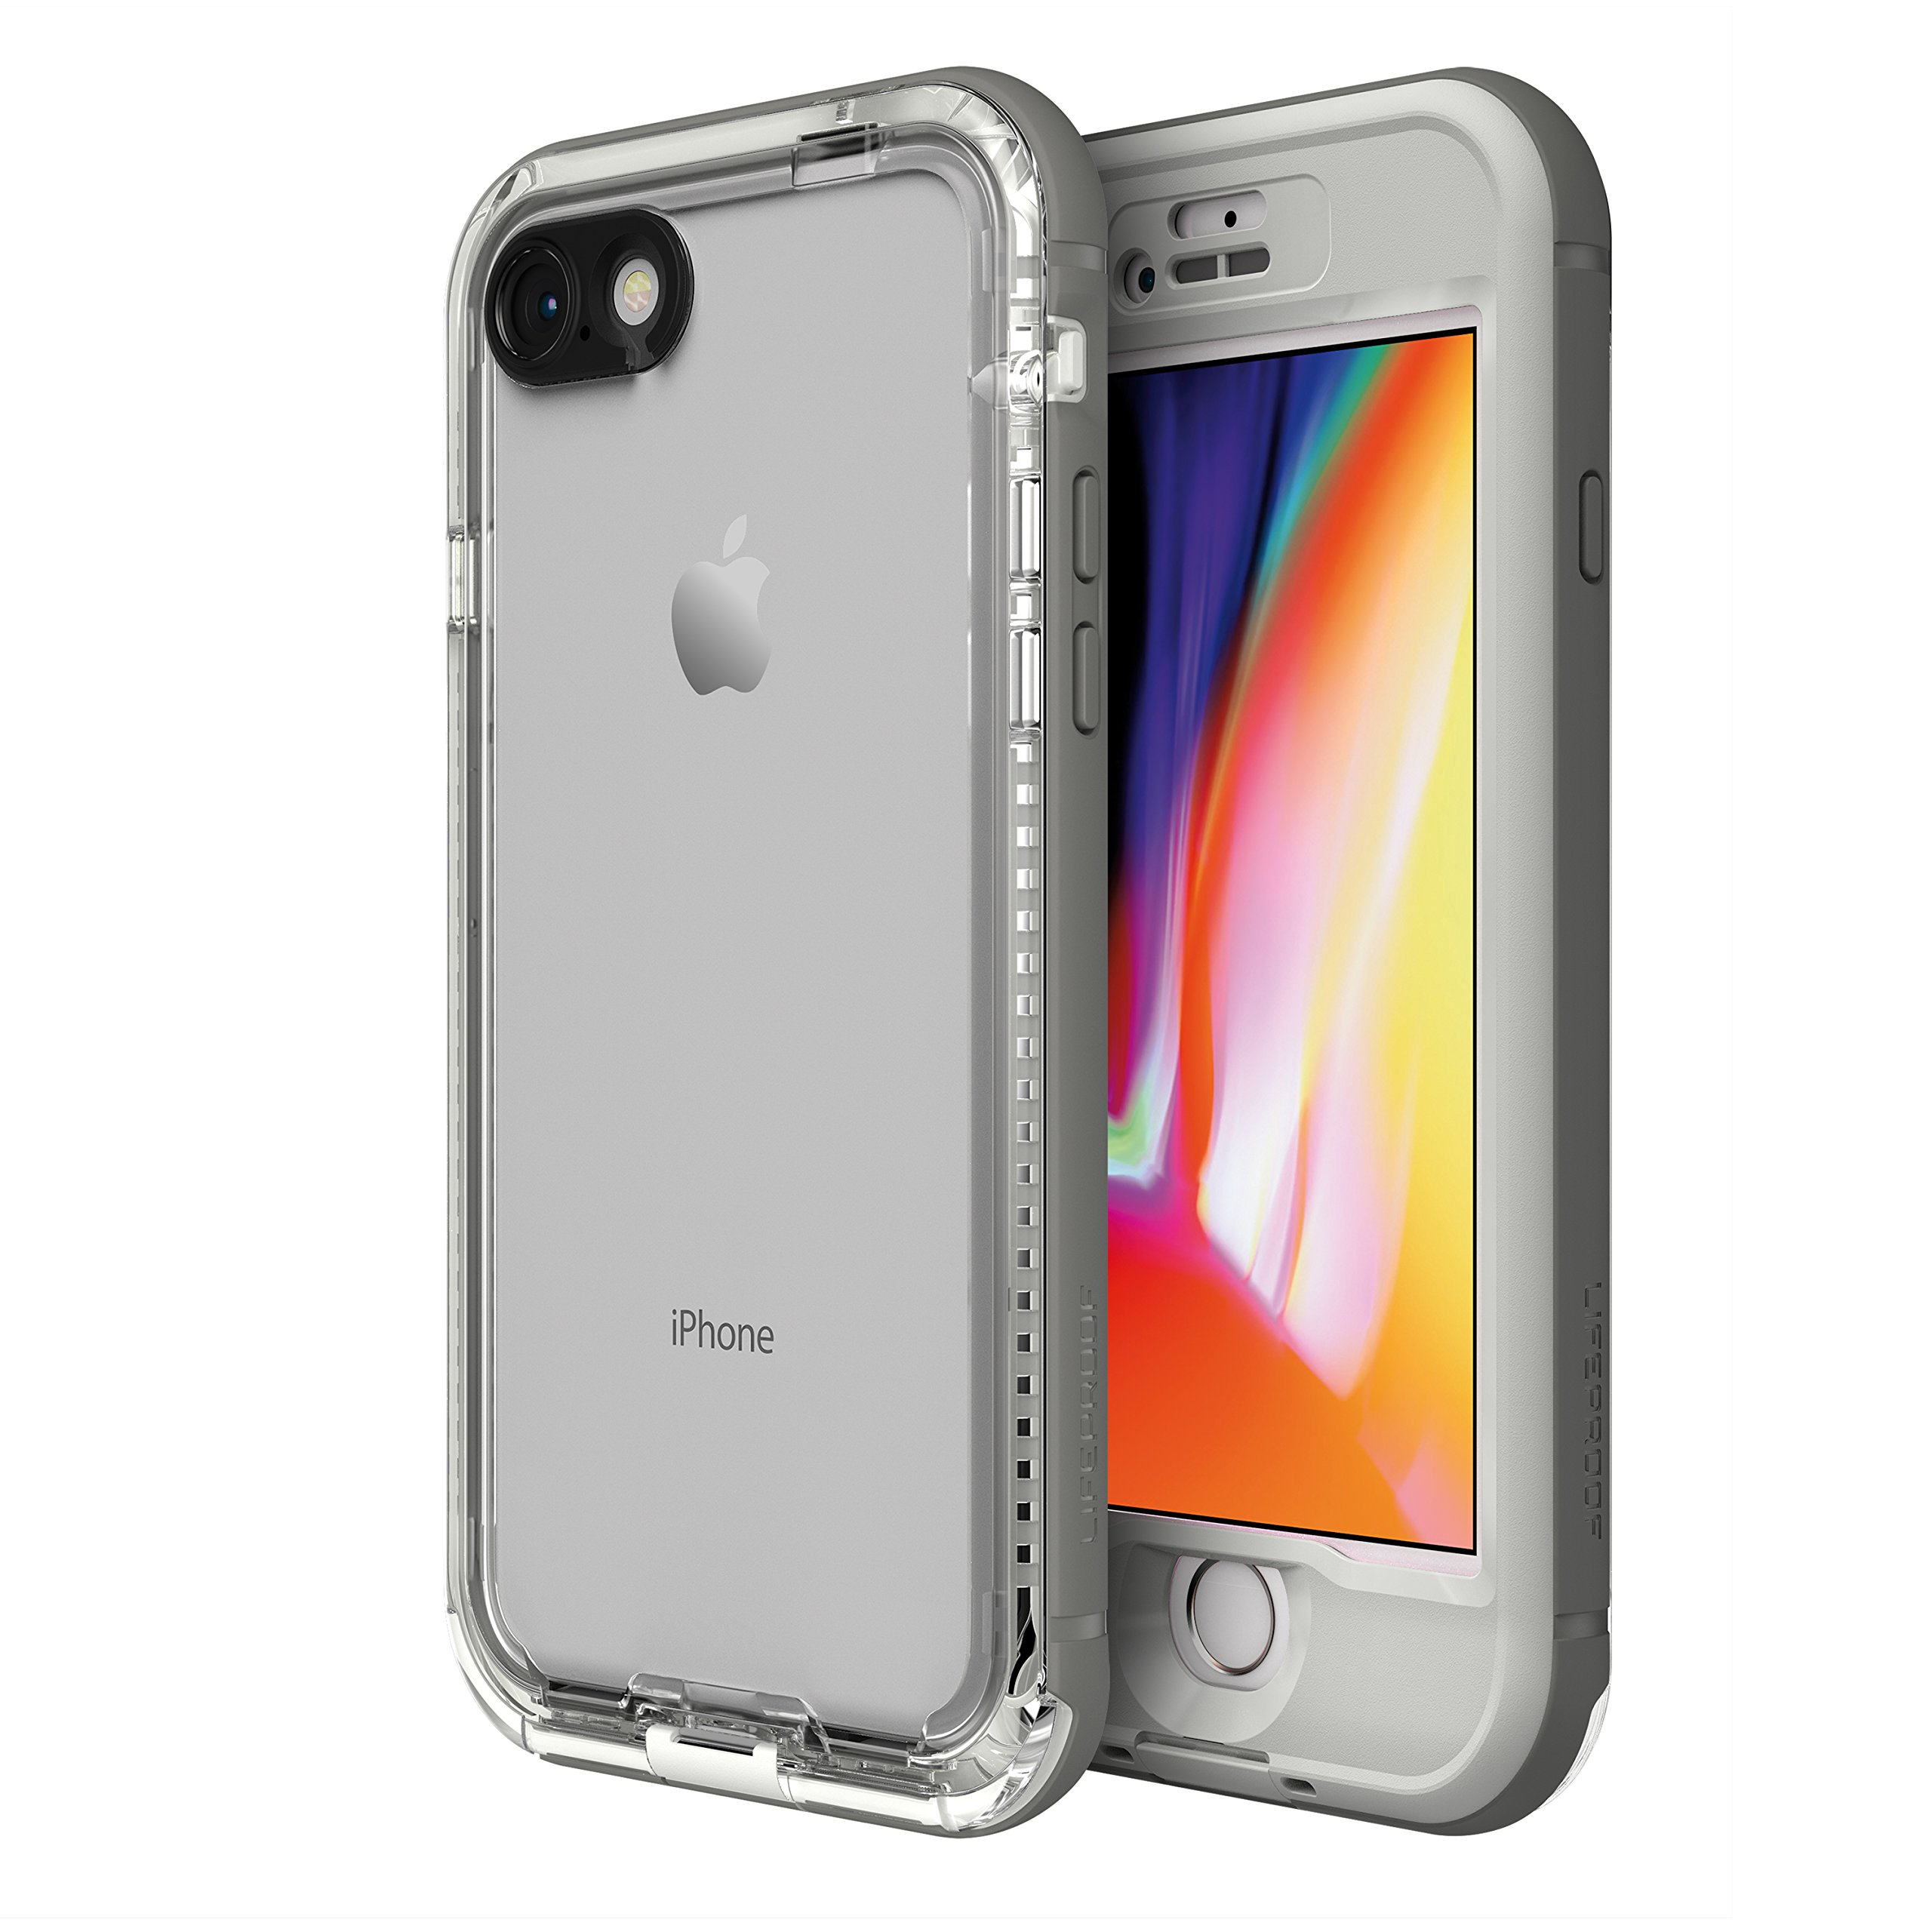 LifeProof NÜÜD SERIES Waterproof Case for iPhone 8 (ONLY) - Retail Packaging - SNOWCAPPED (BRIGHT WHITE/SLEET)